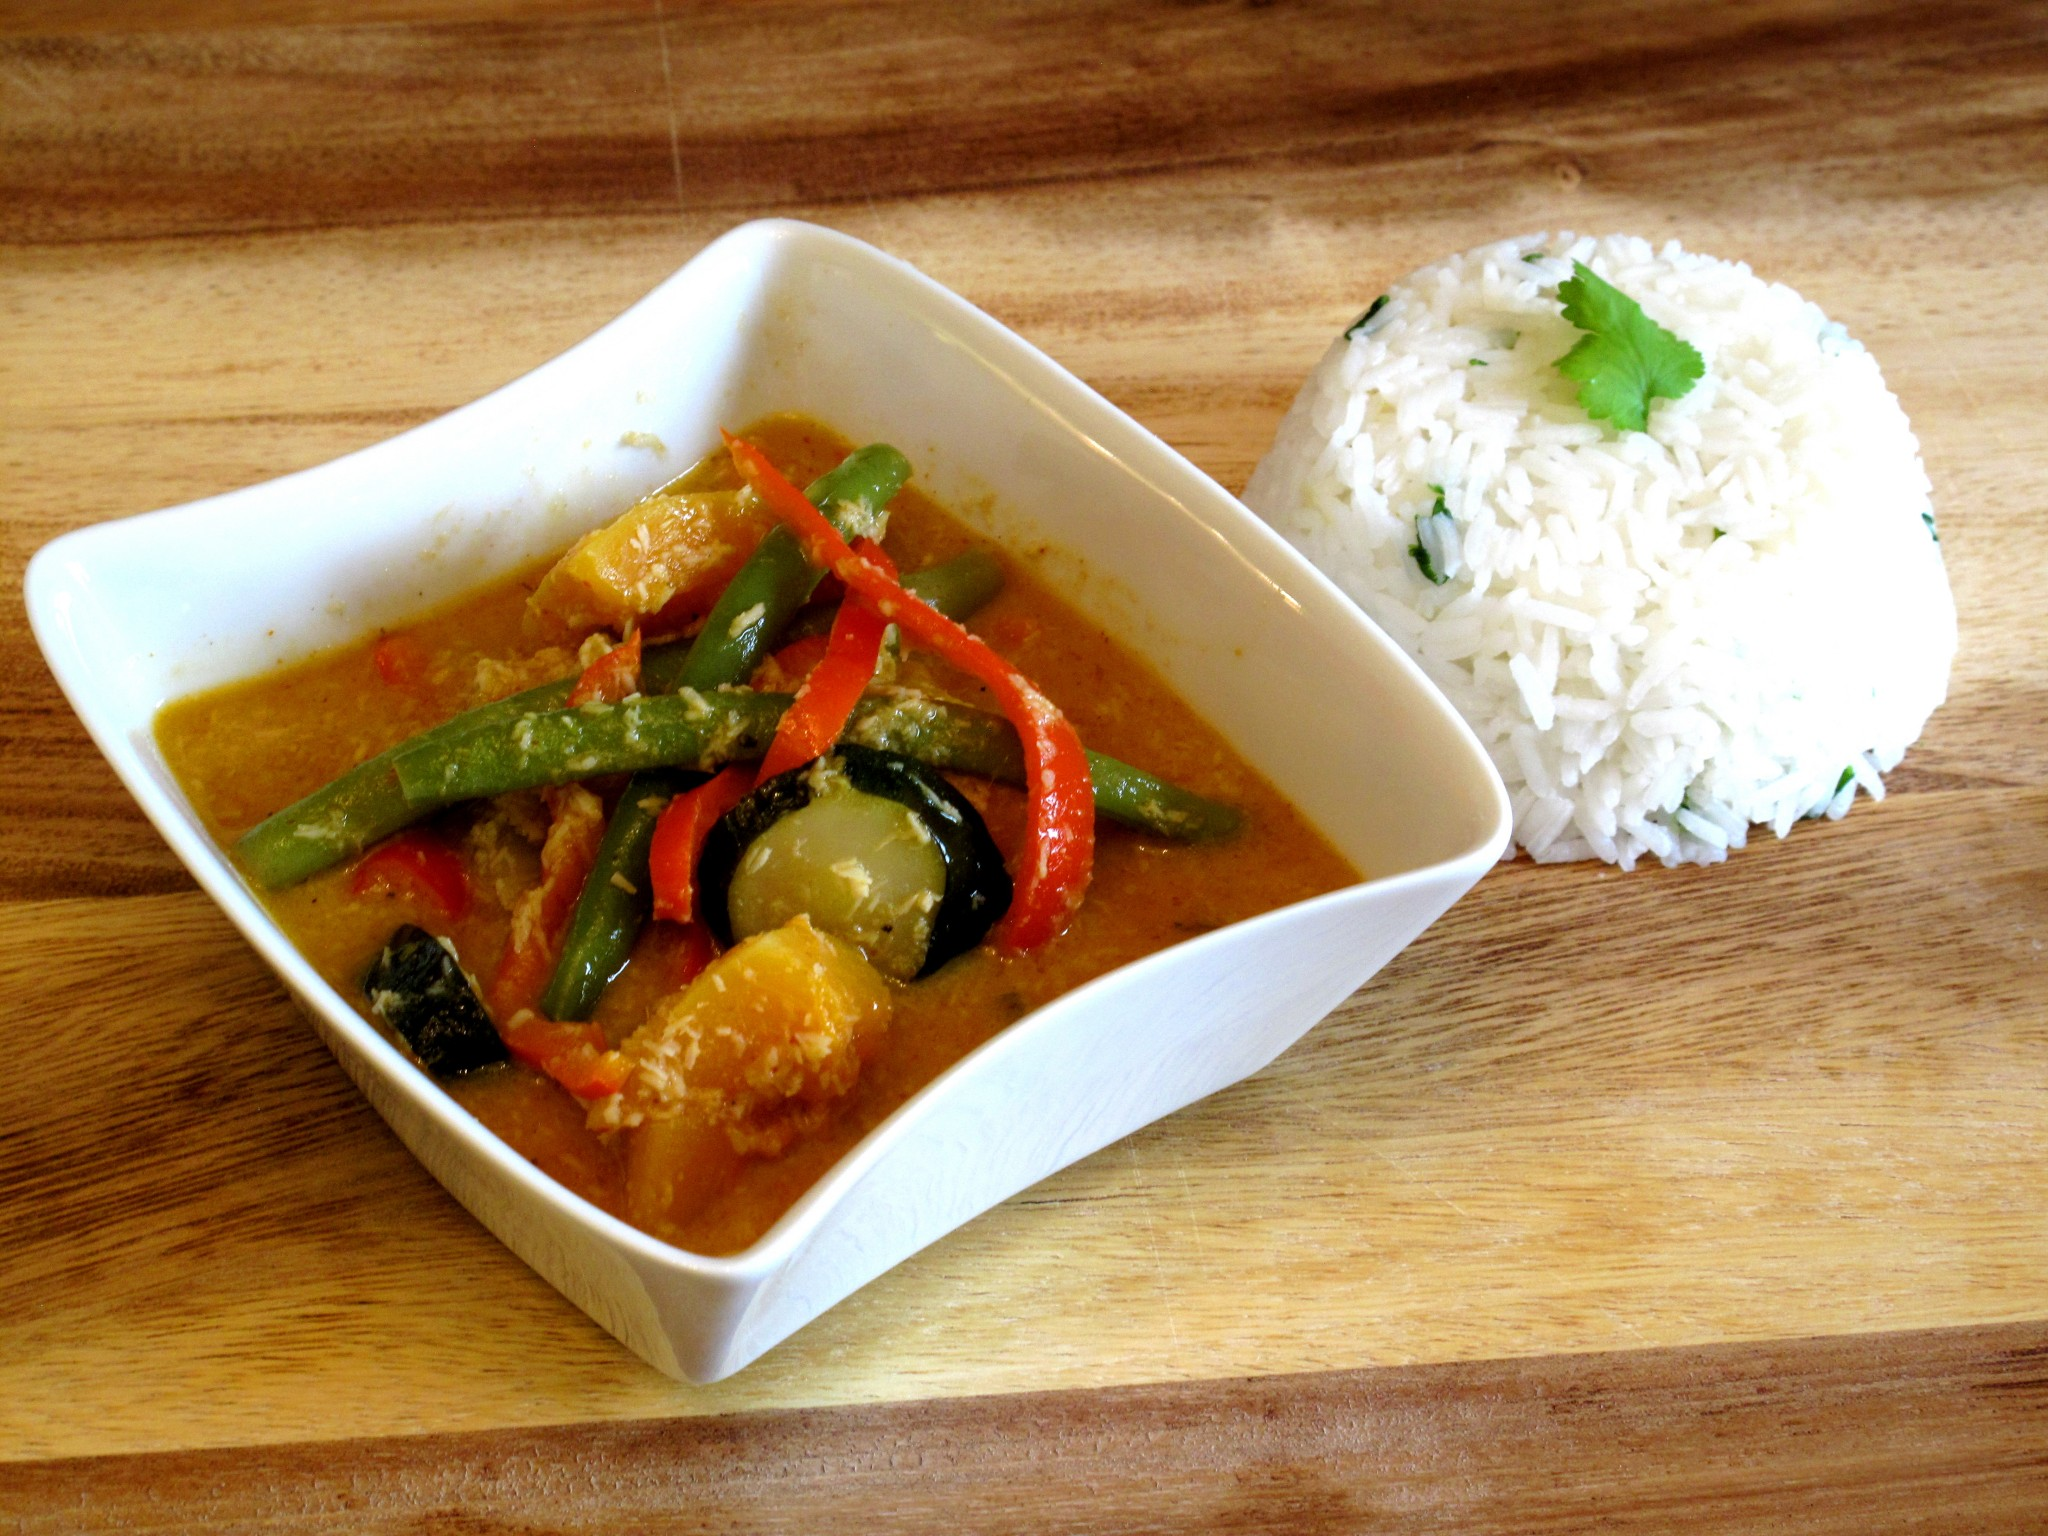 butternut squash courgette vegetarian thai red curry